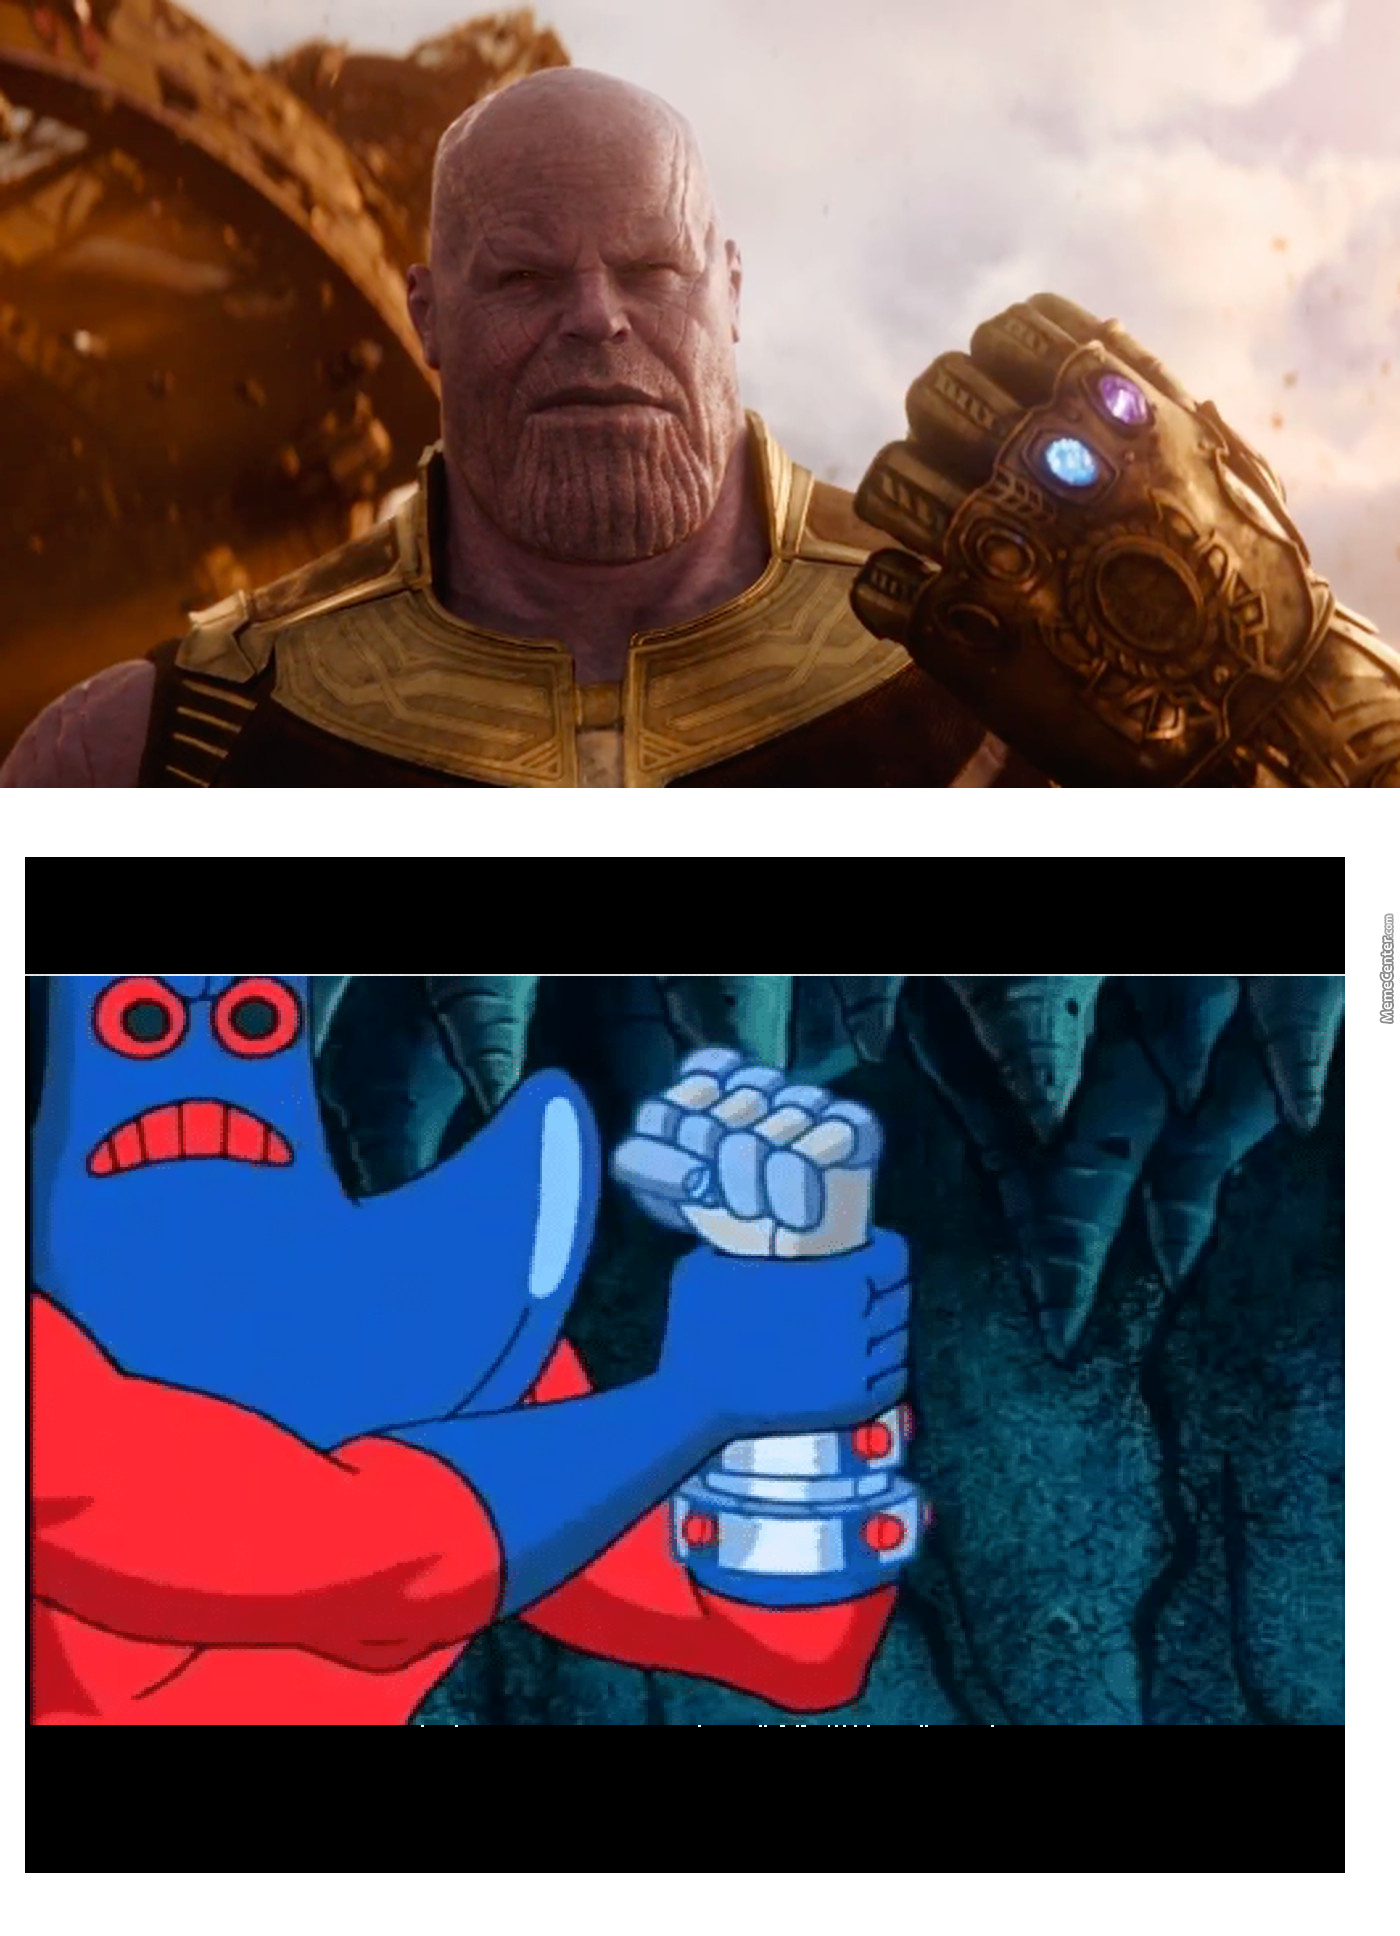 Meme Thanos And Man Ray 2018.png